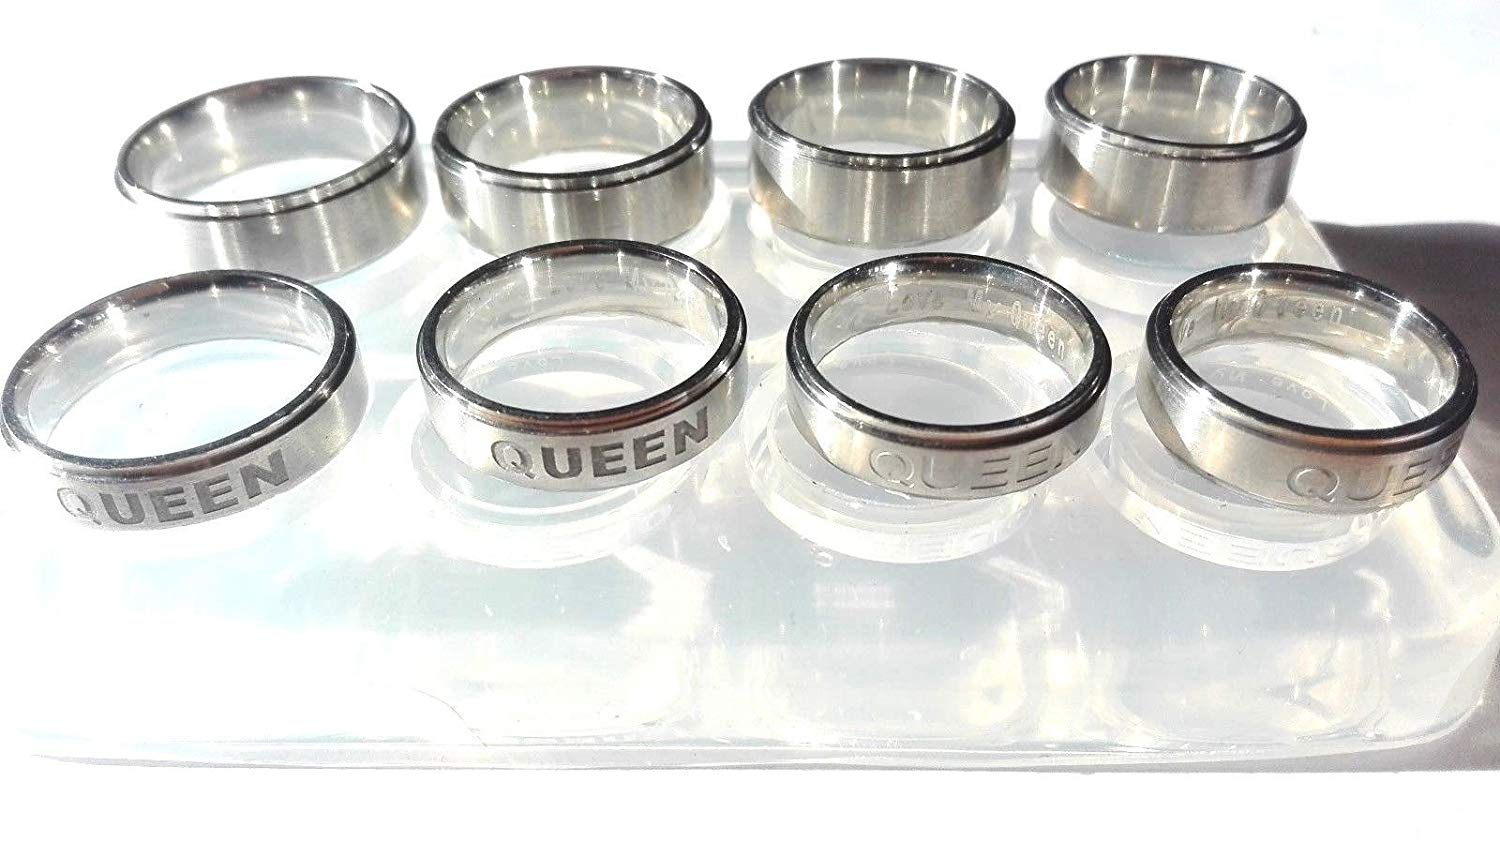 Clear silicone unisex KING-QUEEN rings mold .Free USA shipping! KING SIZE (8)(9)(10.5)(11.75) QUEEN Size(7)(8)(9)(10.5)....(O-32)